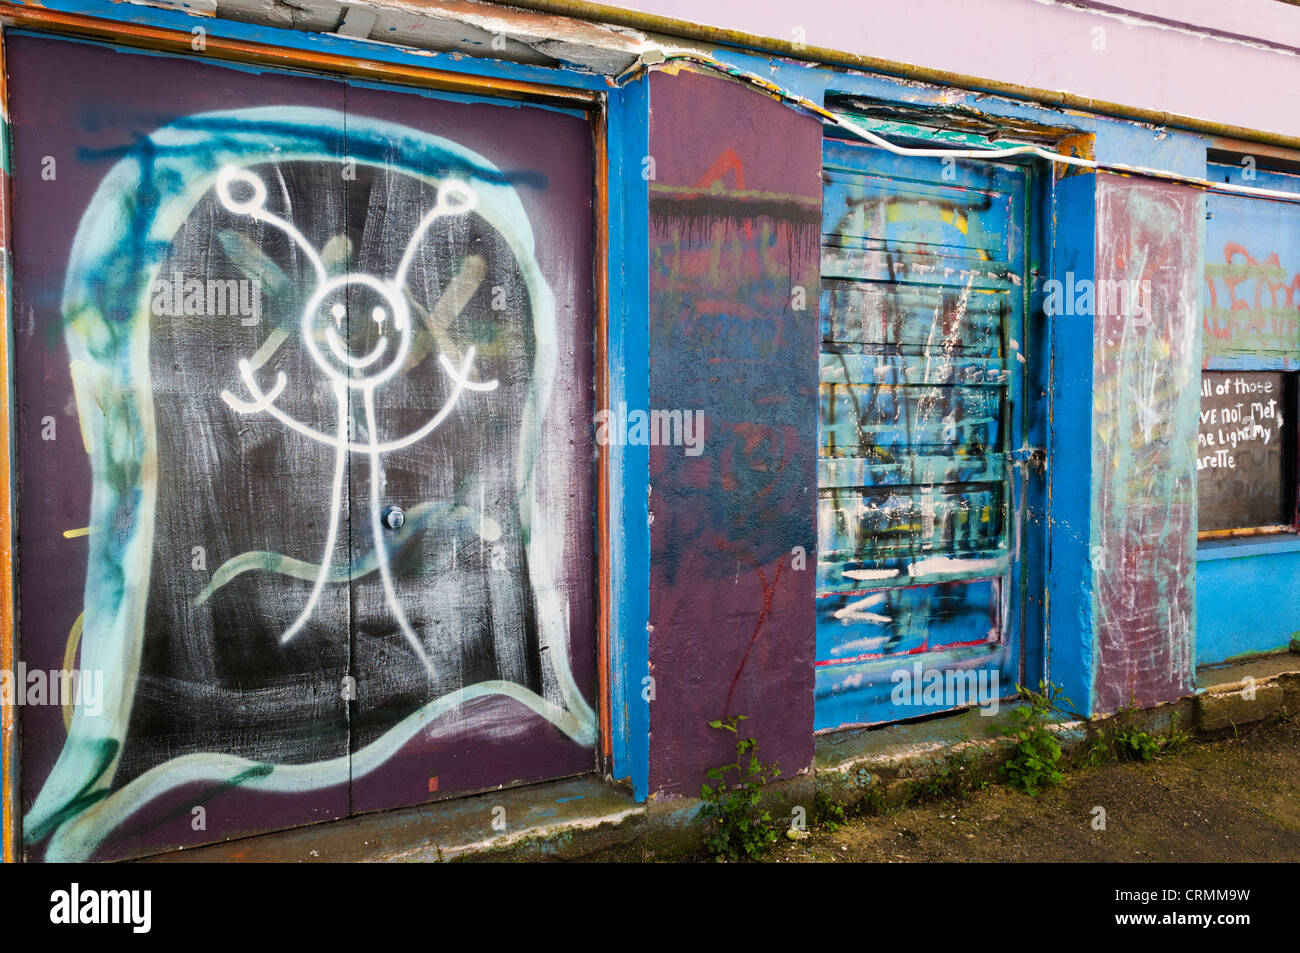 Colorful graffiti filled walls in an alley in downtown Aberdeen, Washington. - Stock Image